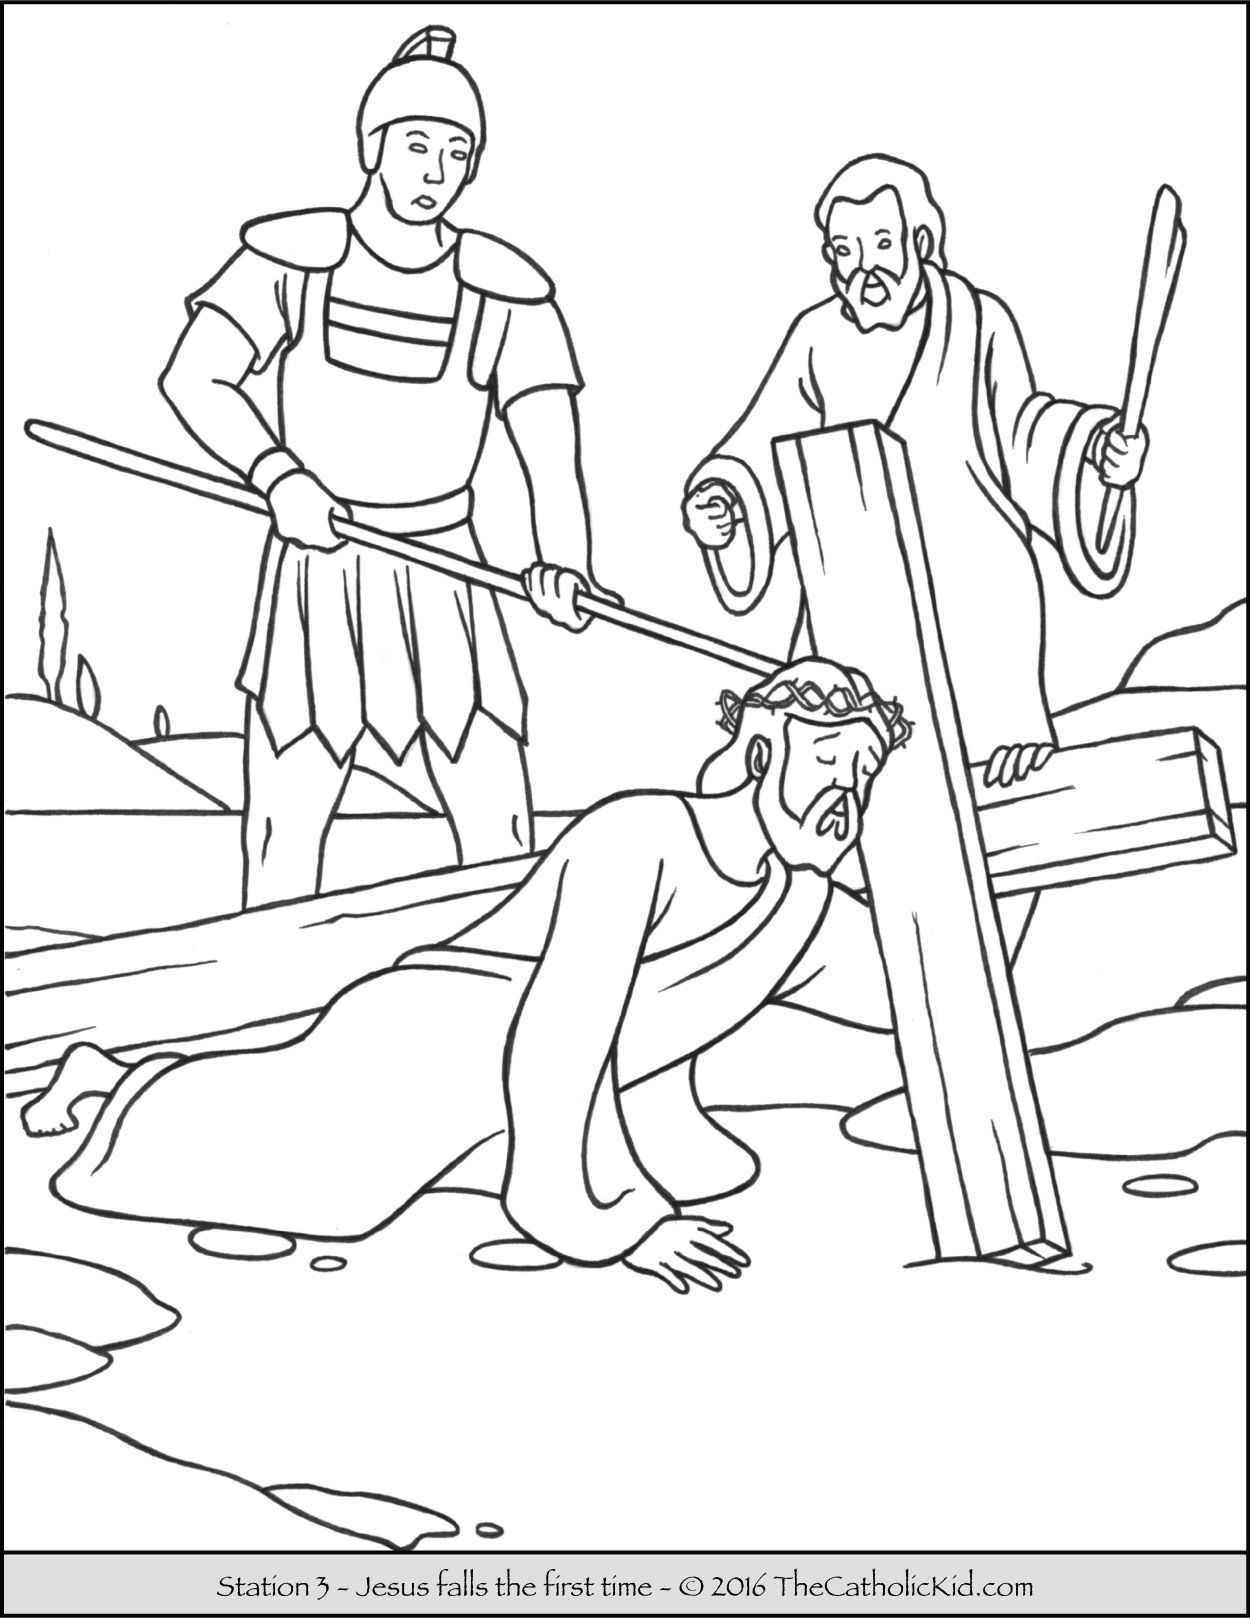 stations of the cross coloring catholic stations of the cross coloring pages ooo coloring the of stations cross